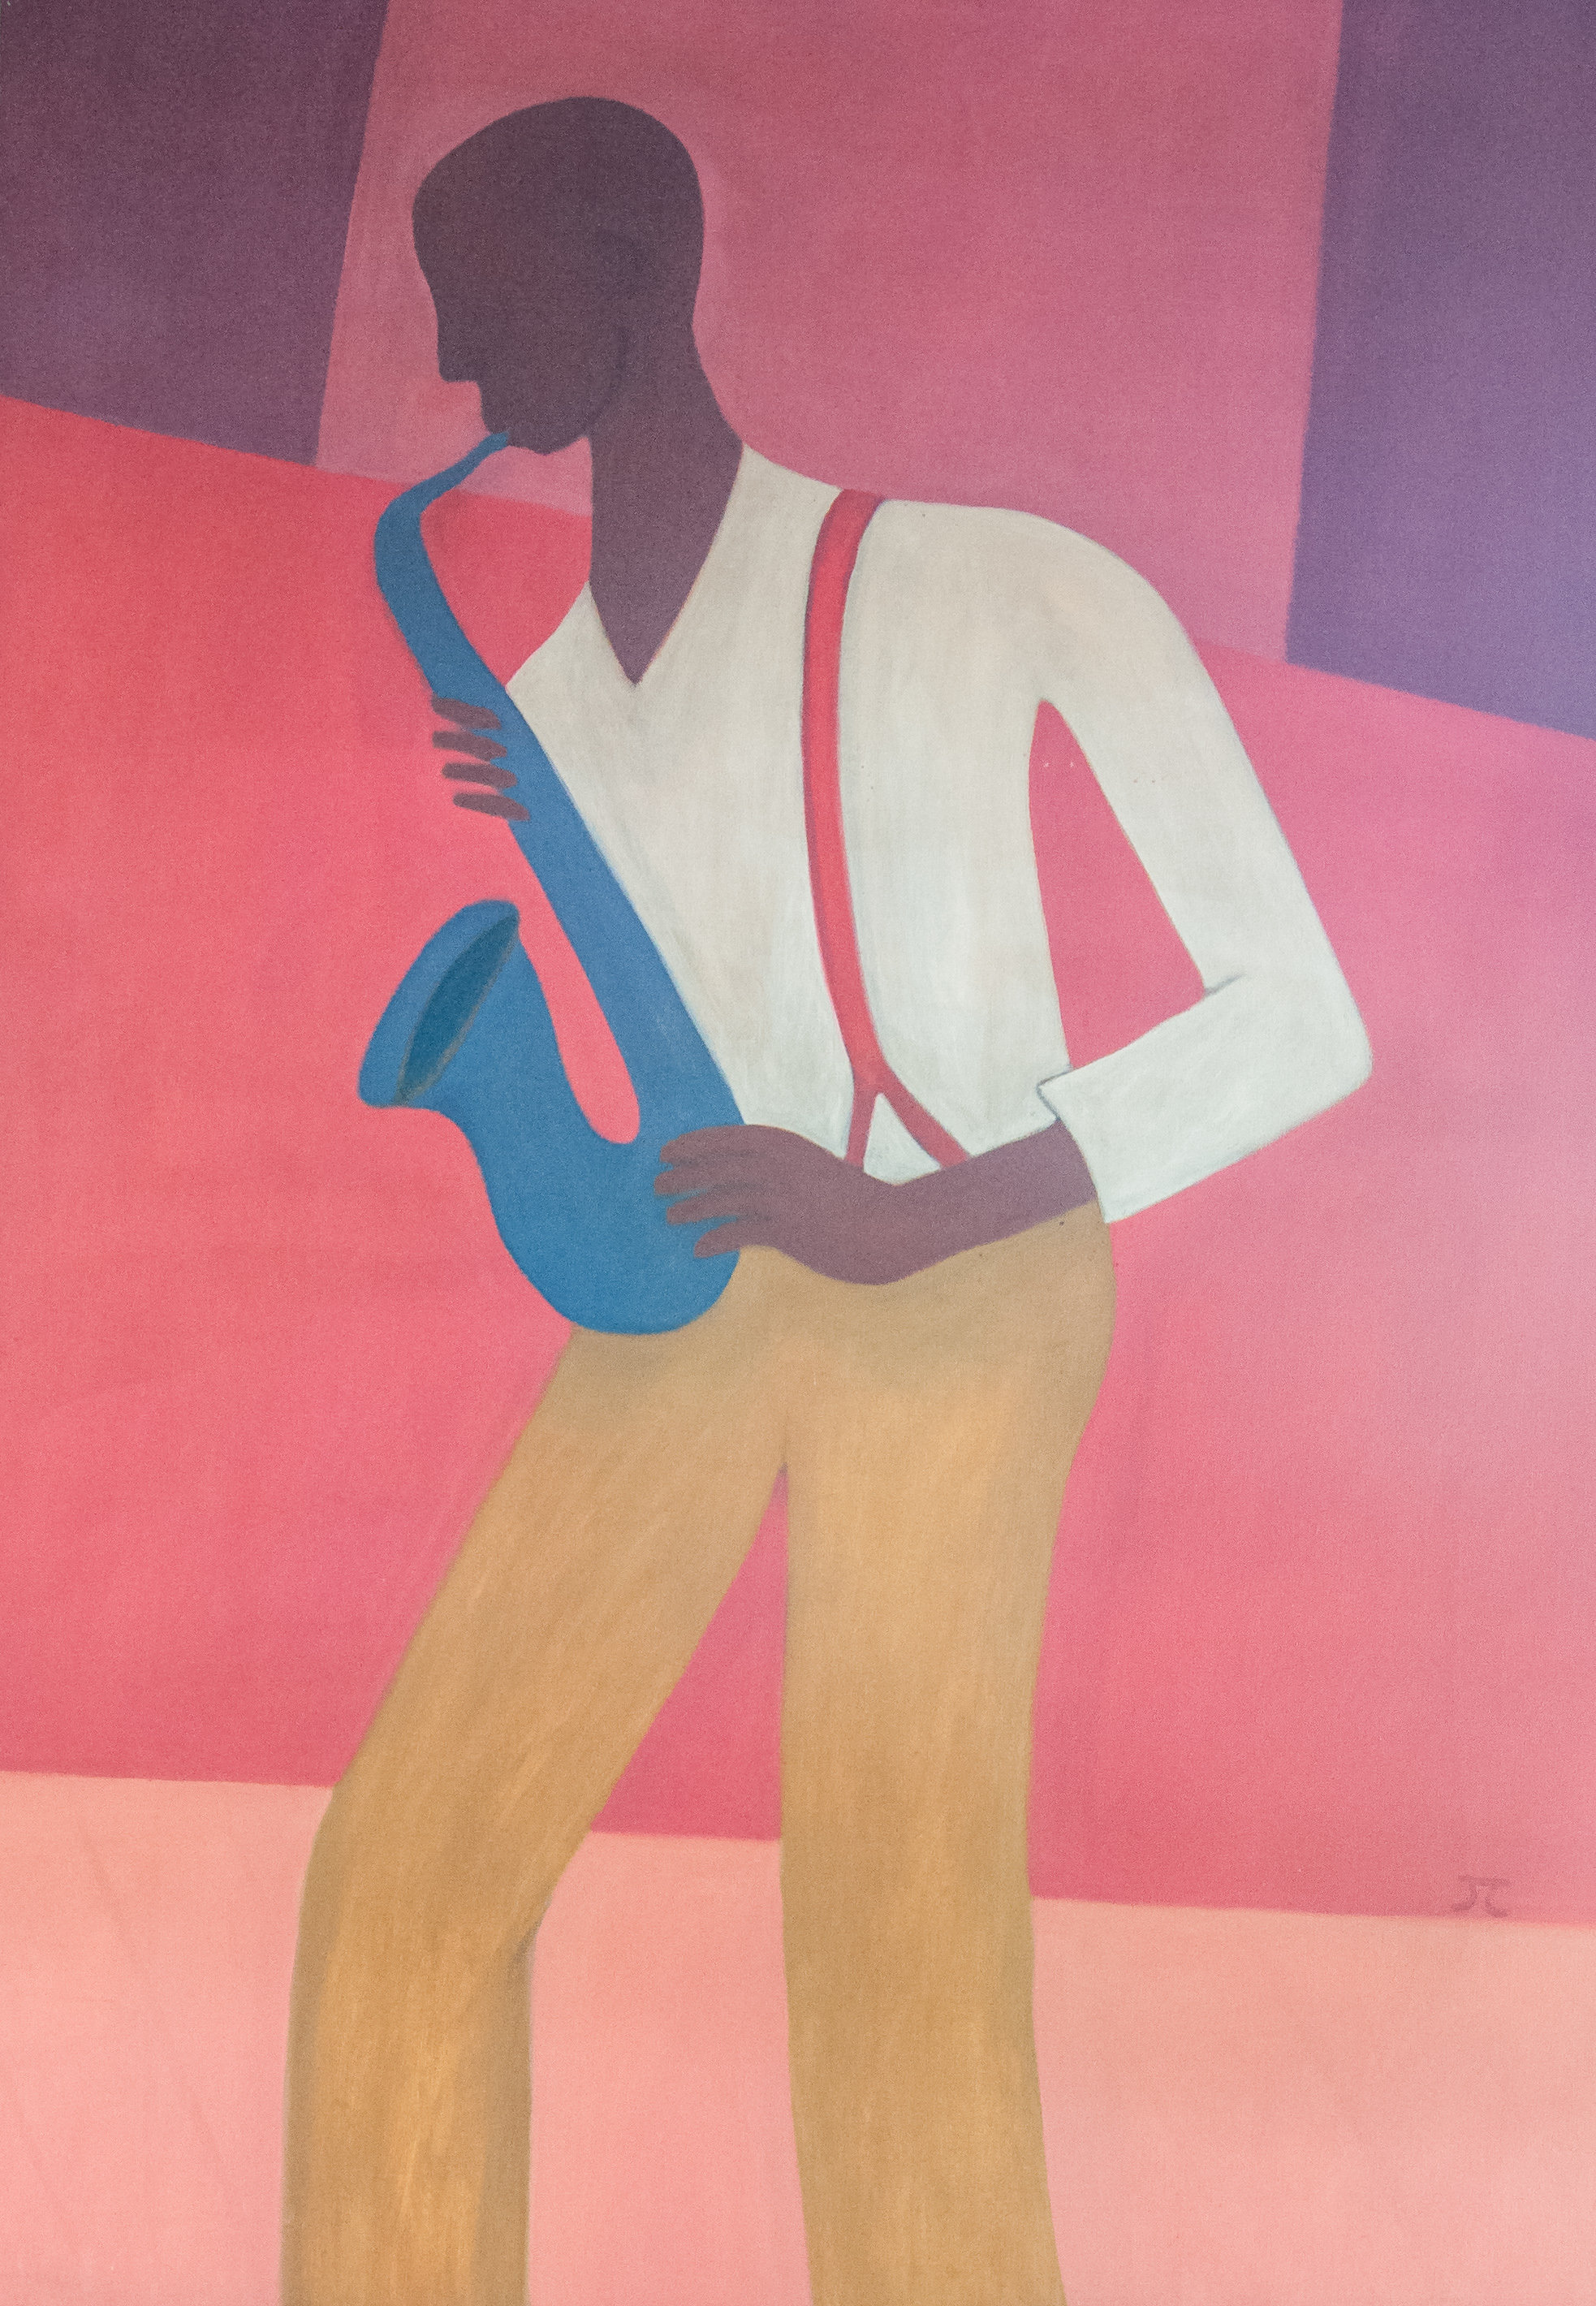 The Sax Player Painting by Jerry Cantwell